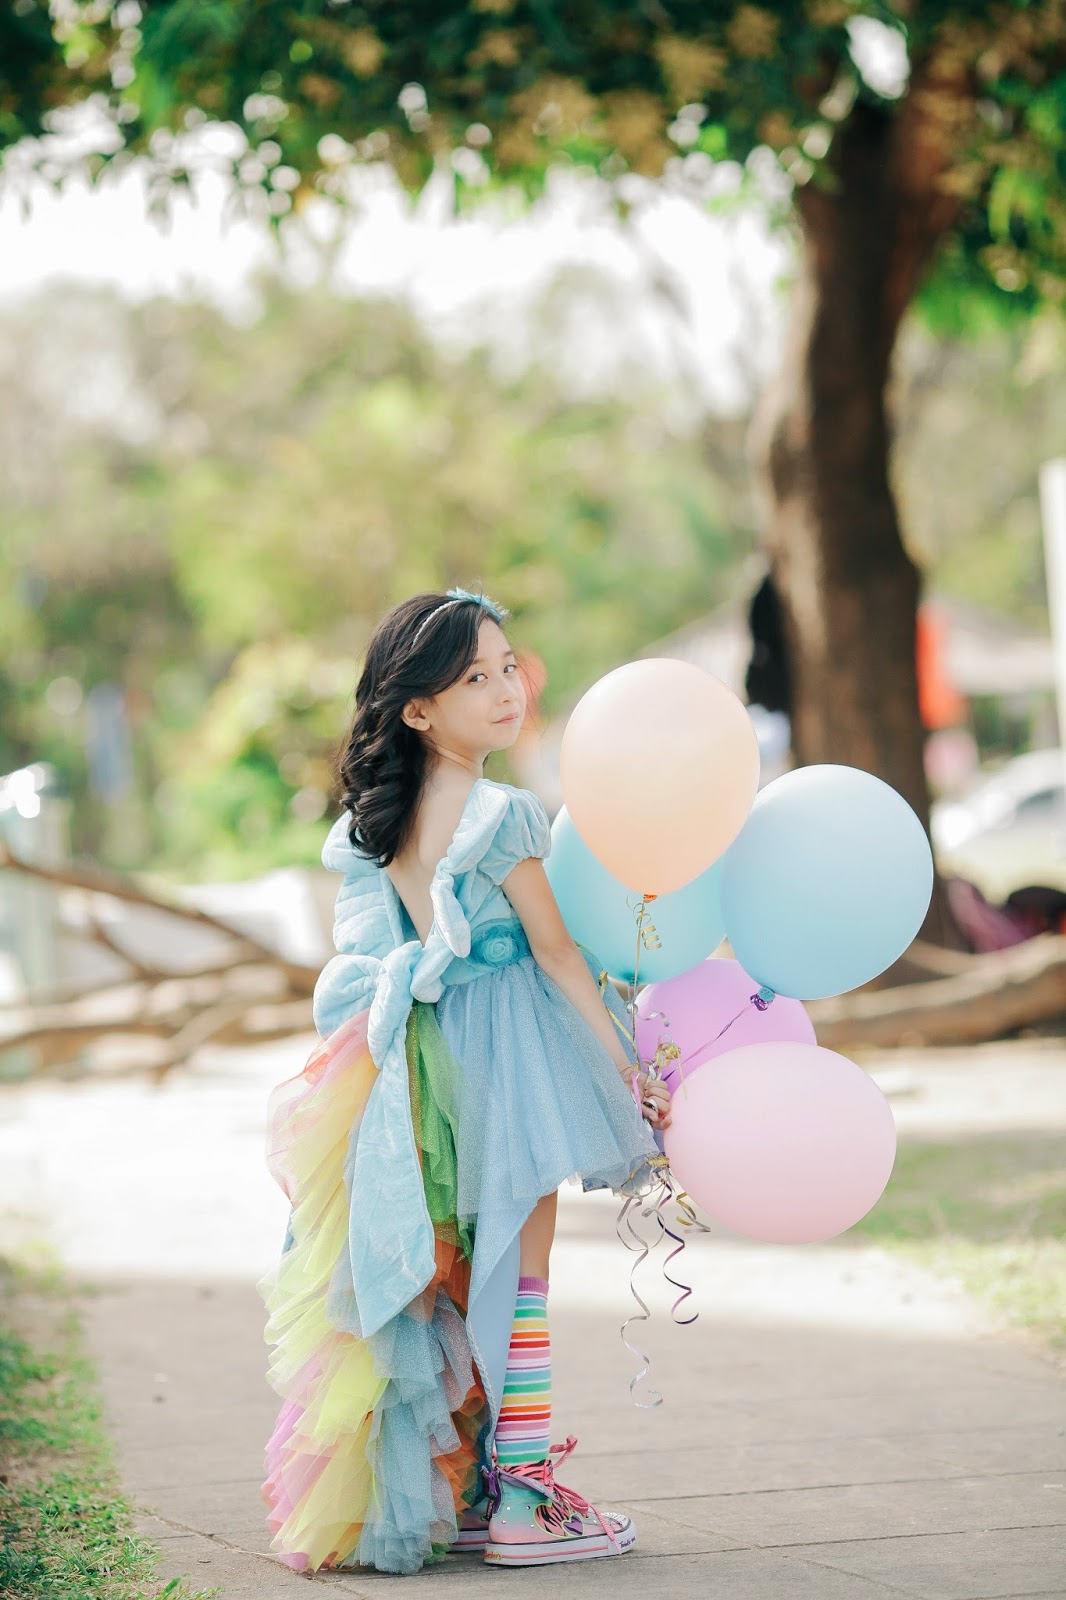 A Love Letter for my Daughter on her 7th Birthday | Rockstarmomma